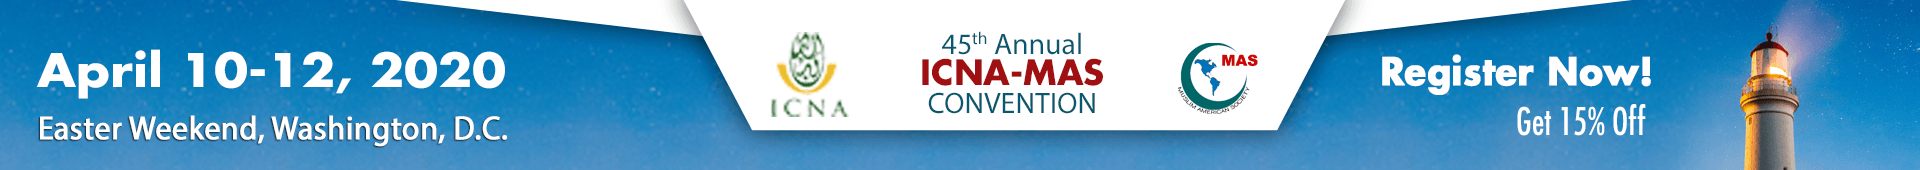 ICNA Convention Logo